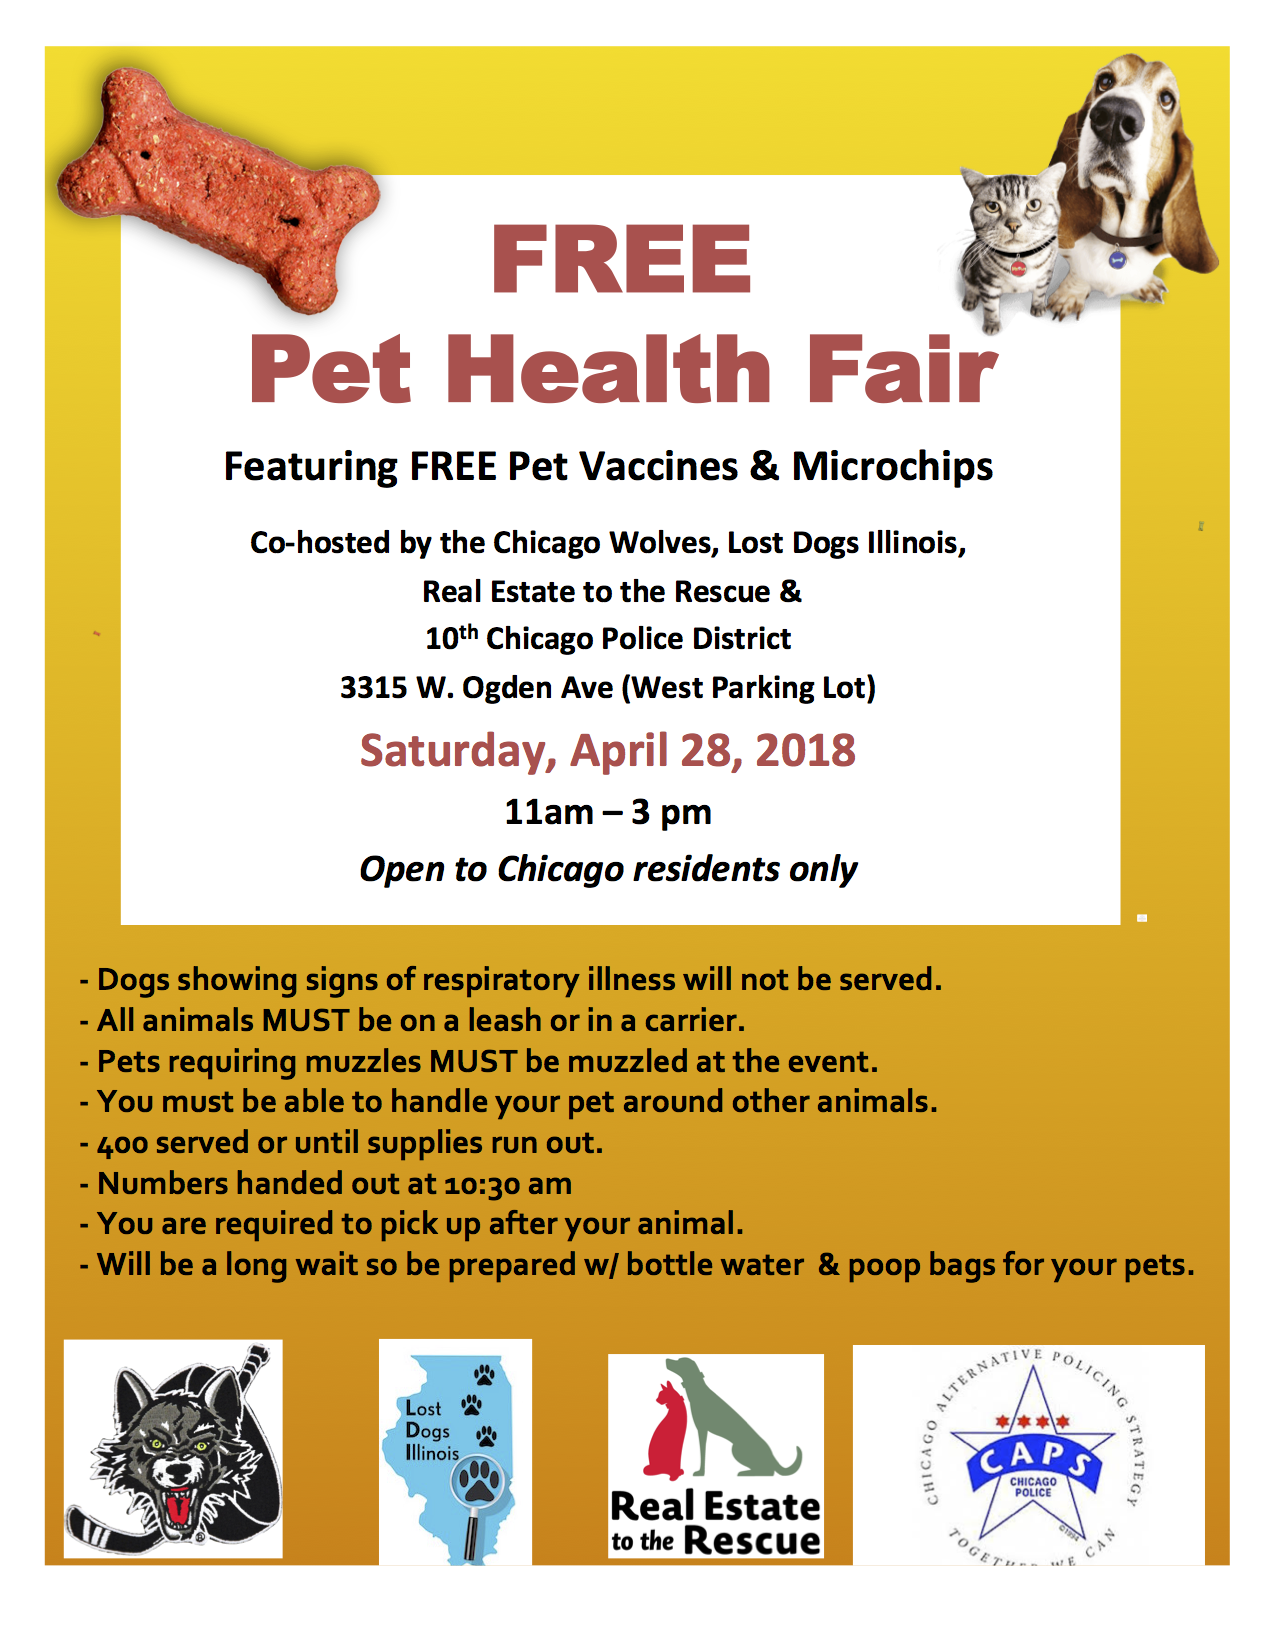 Free Pet Health Fair April 28 2018 10th Chicago Police District